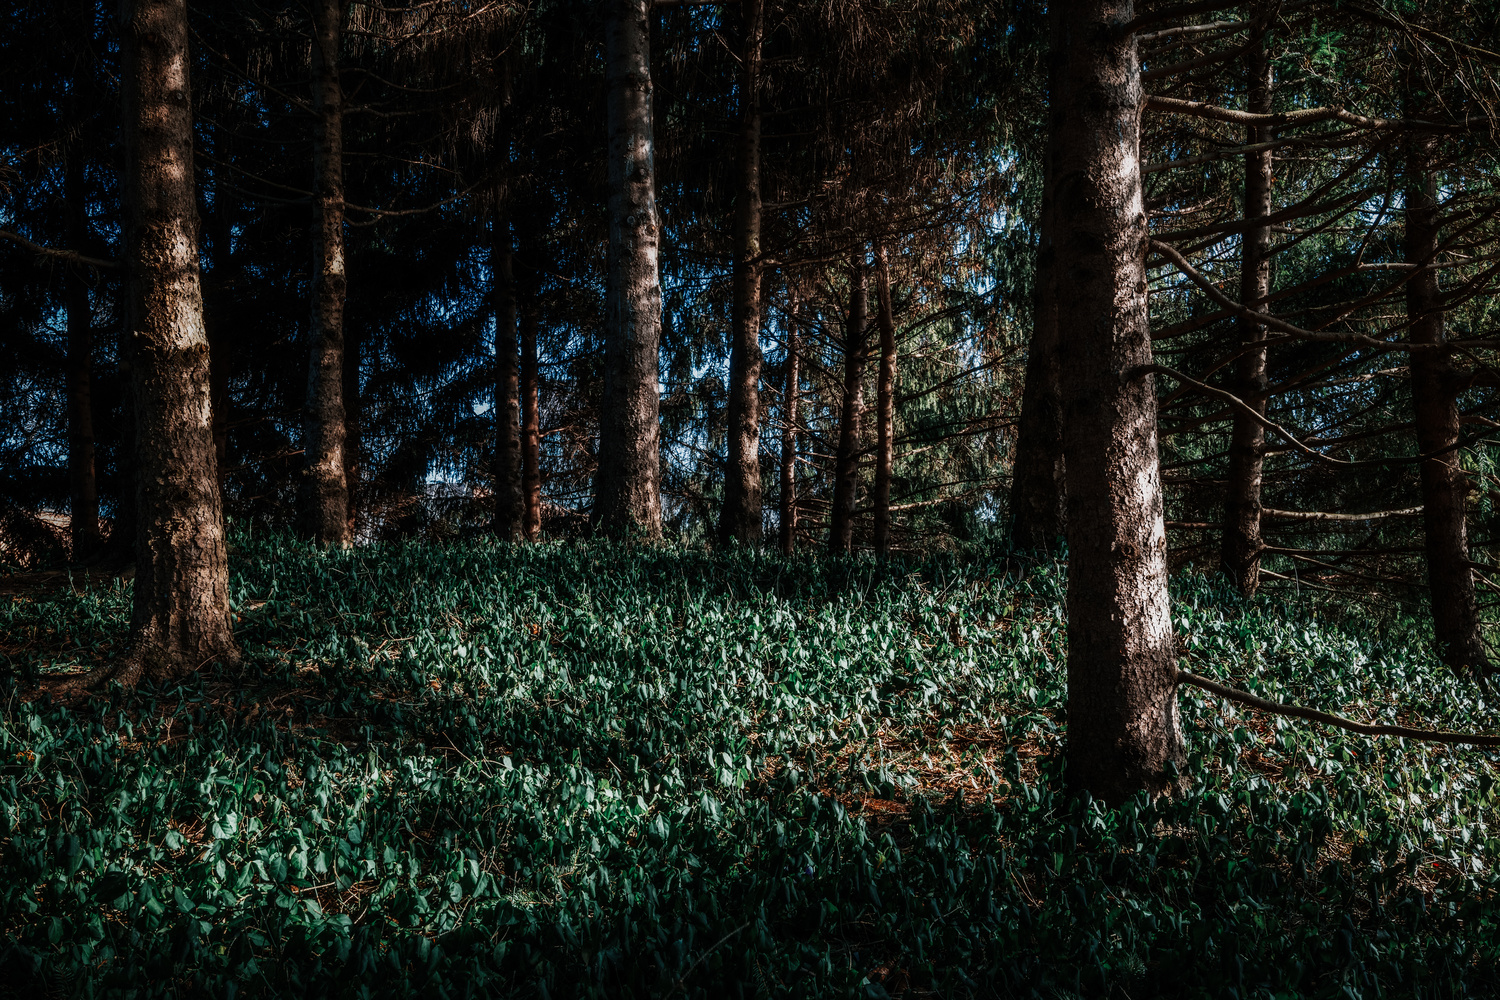 Forest by Skyler Ewing